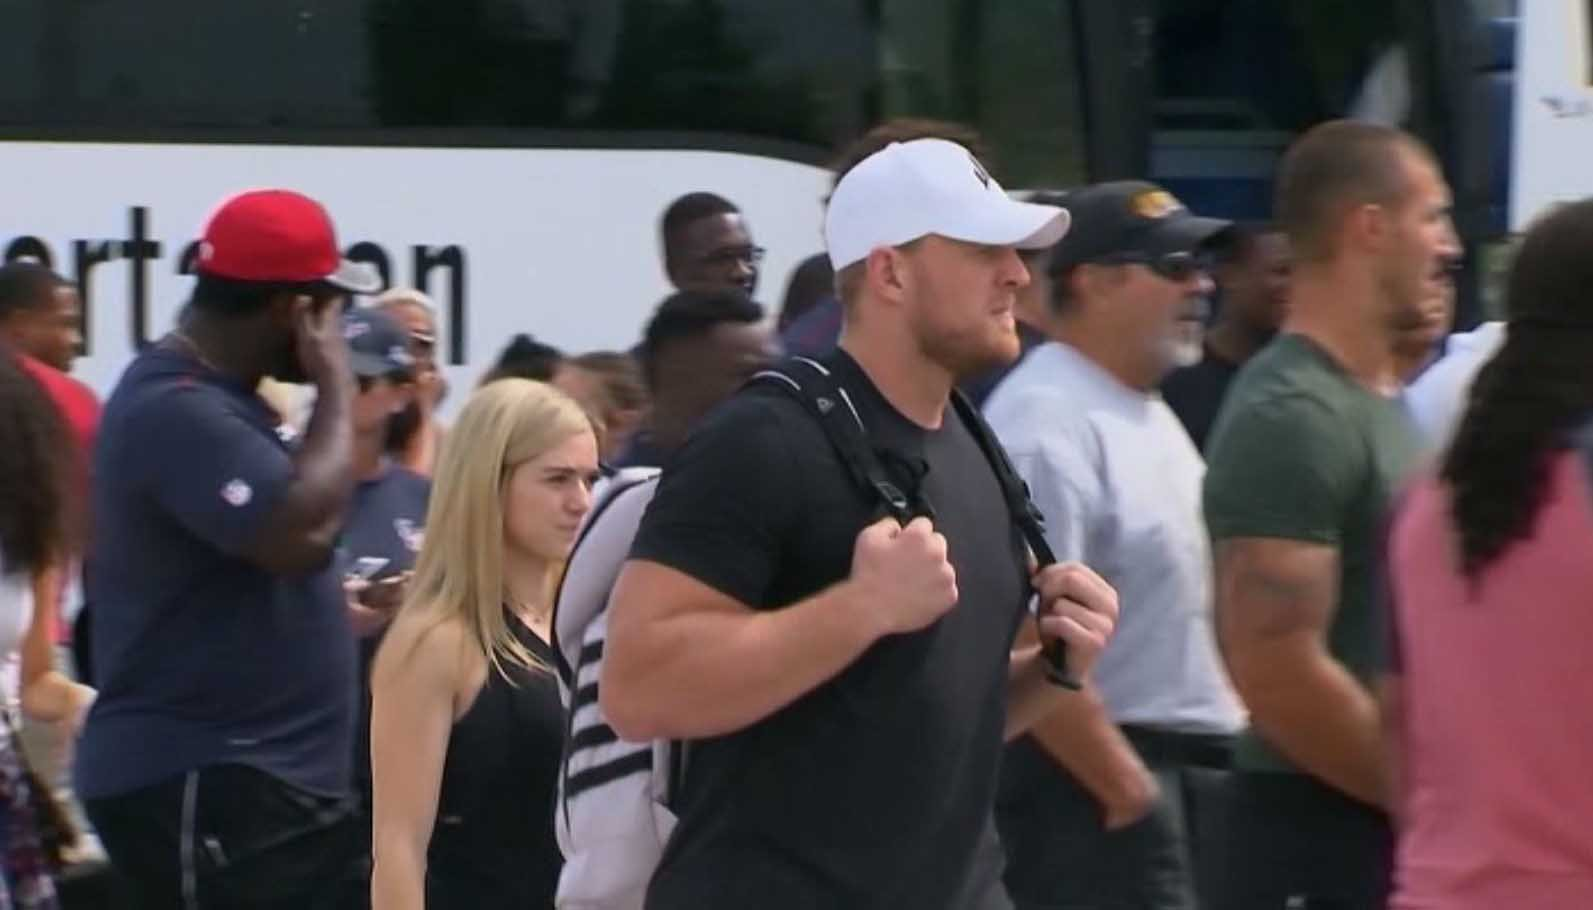 The Houston Texans confirmed J.J. Watt will pay for the funerals of the 10 people killed Friday. (Source: CNN)